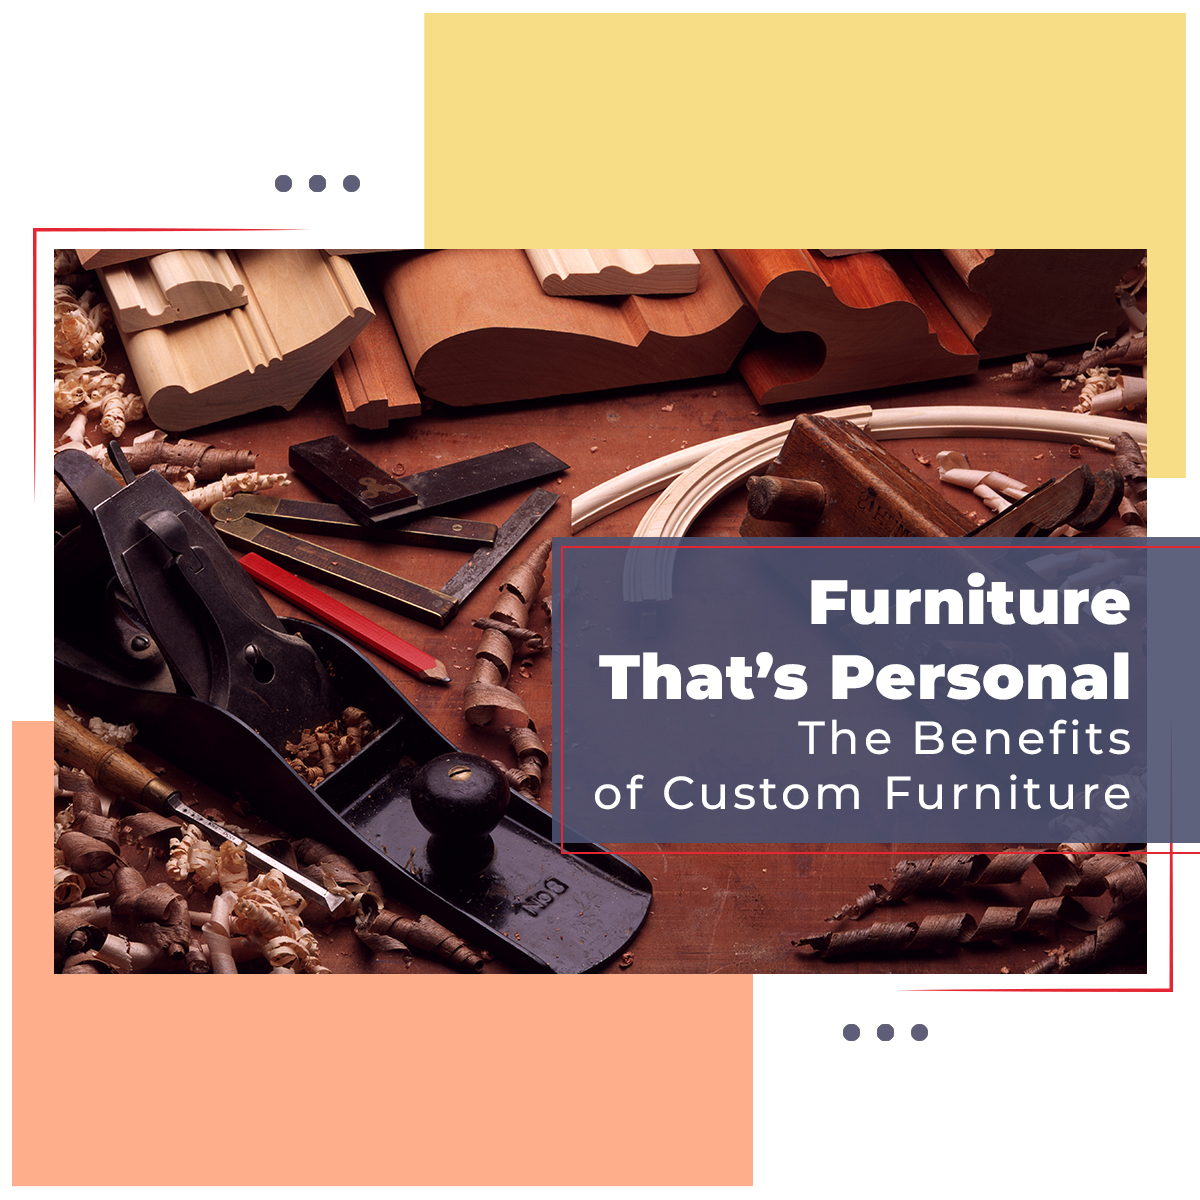 Benefits of custom furniture - Blog cover